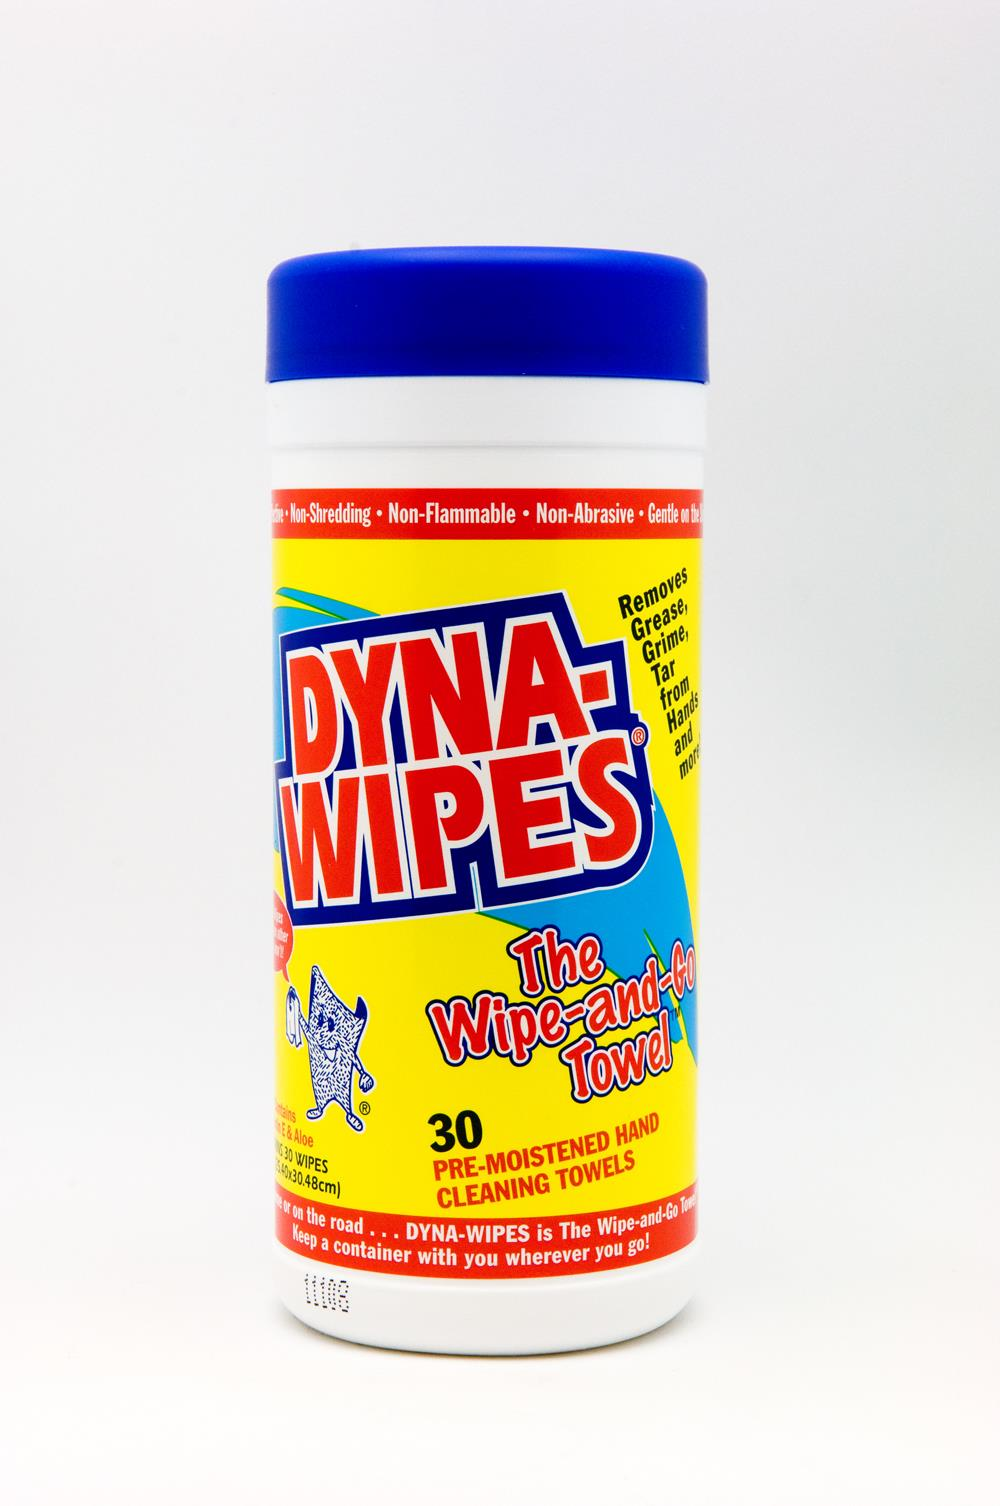 DYNA-WIPES ®